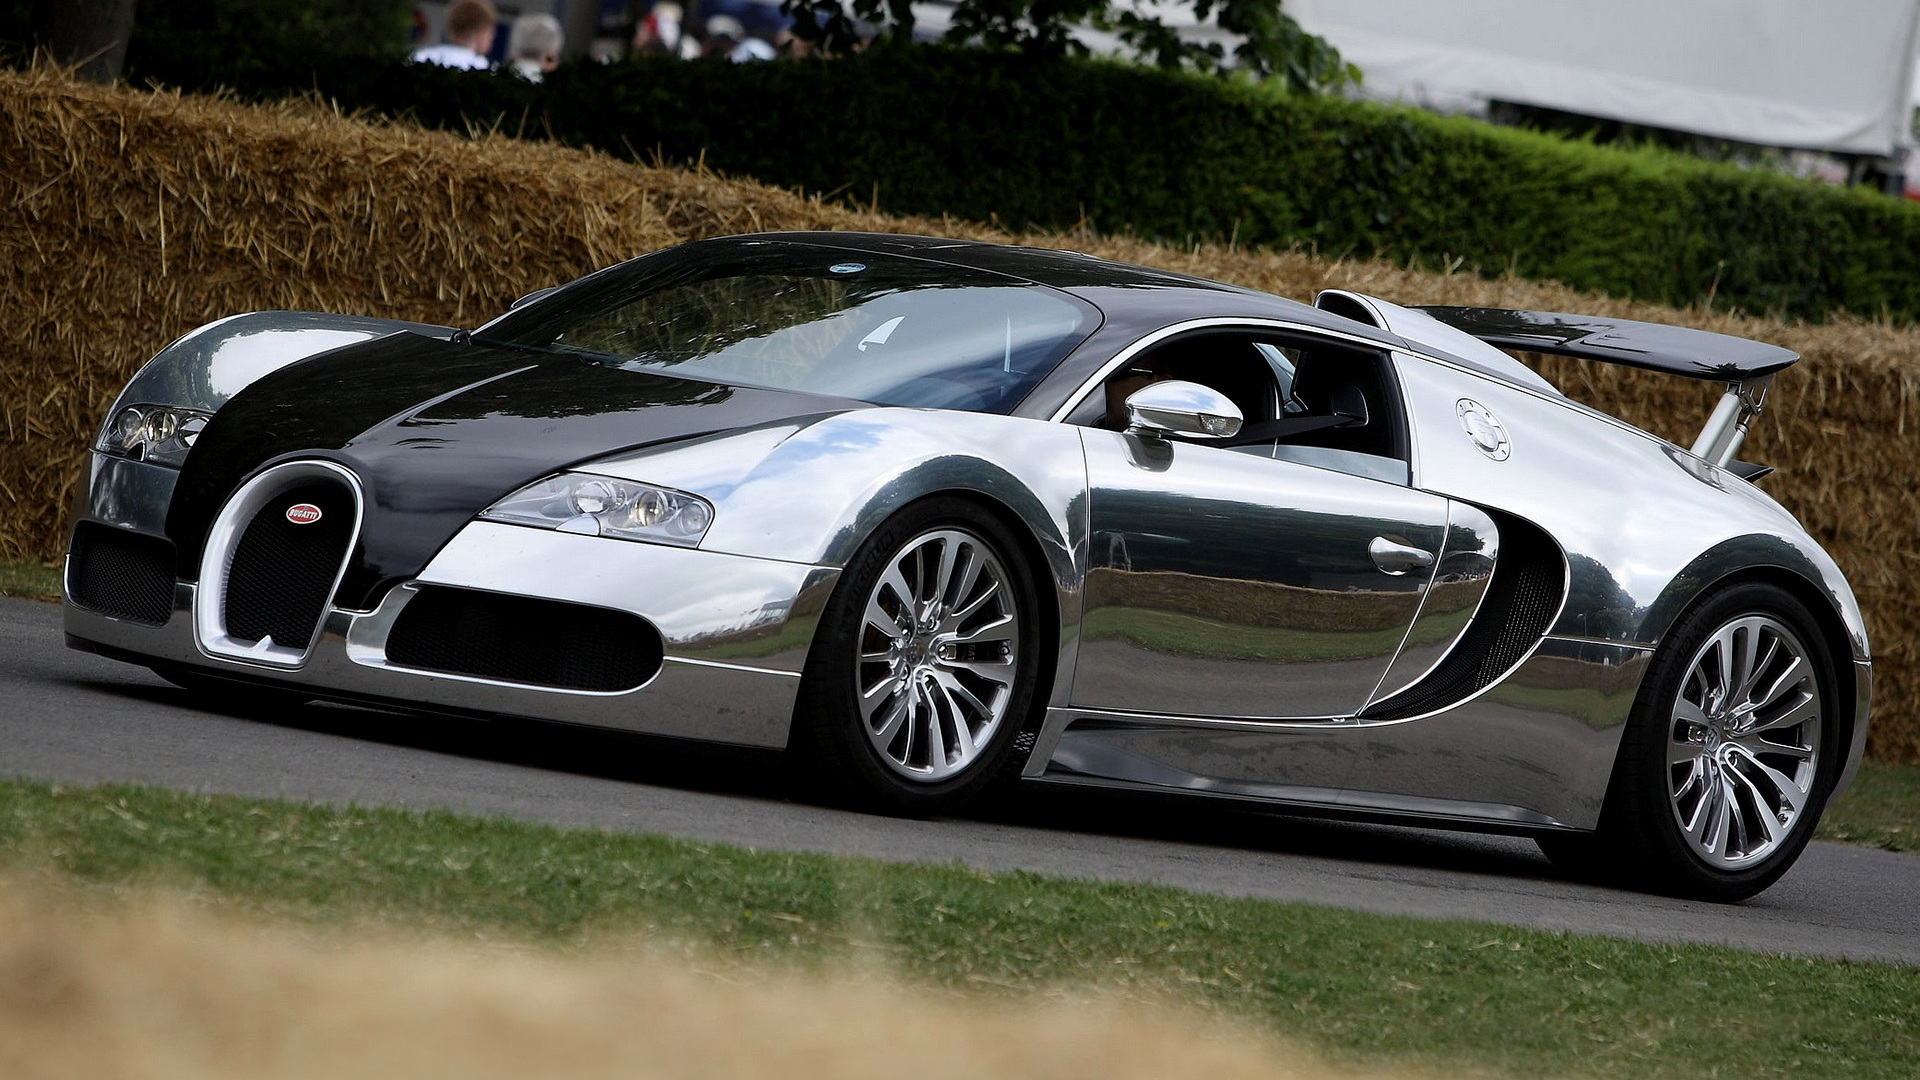 Bugatti Veyron Pur Sang 2007 Wallpapers And Hd Images